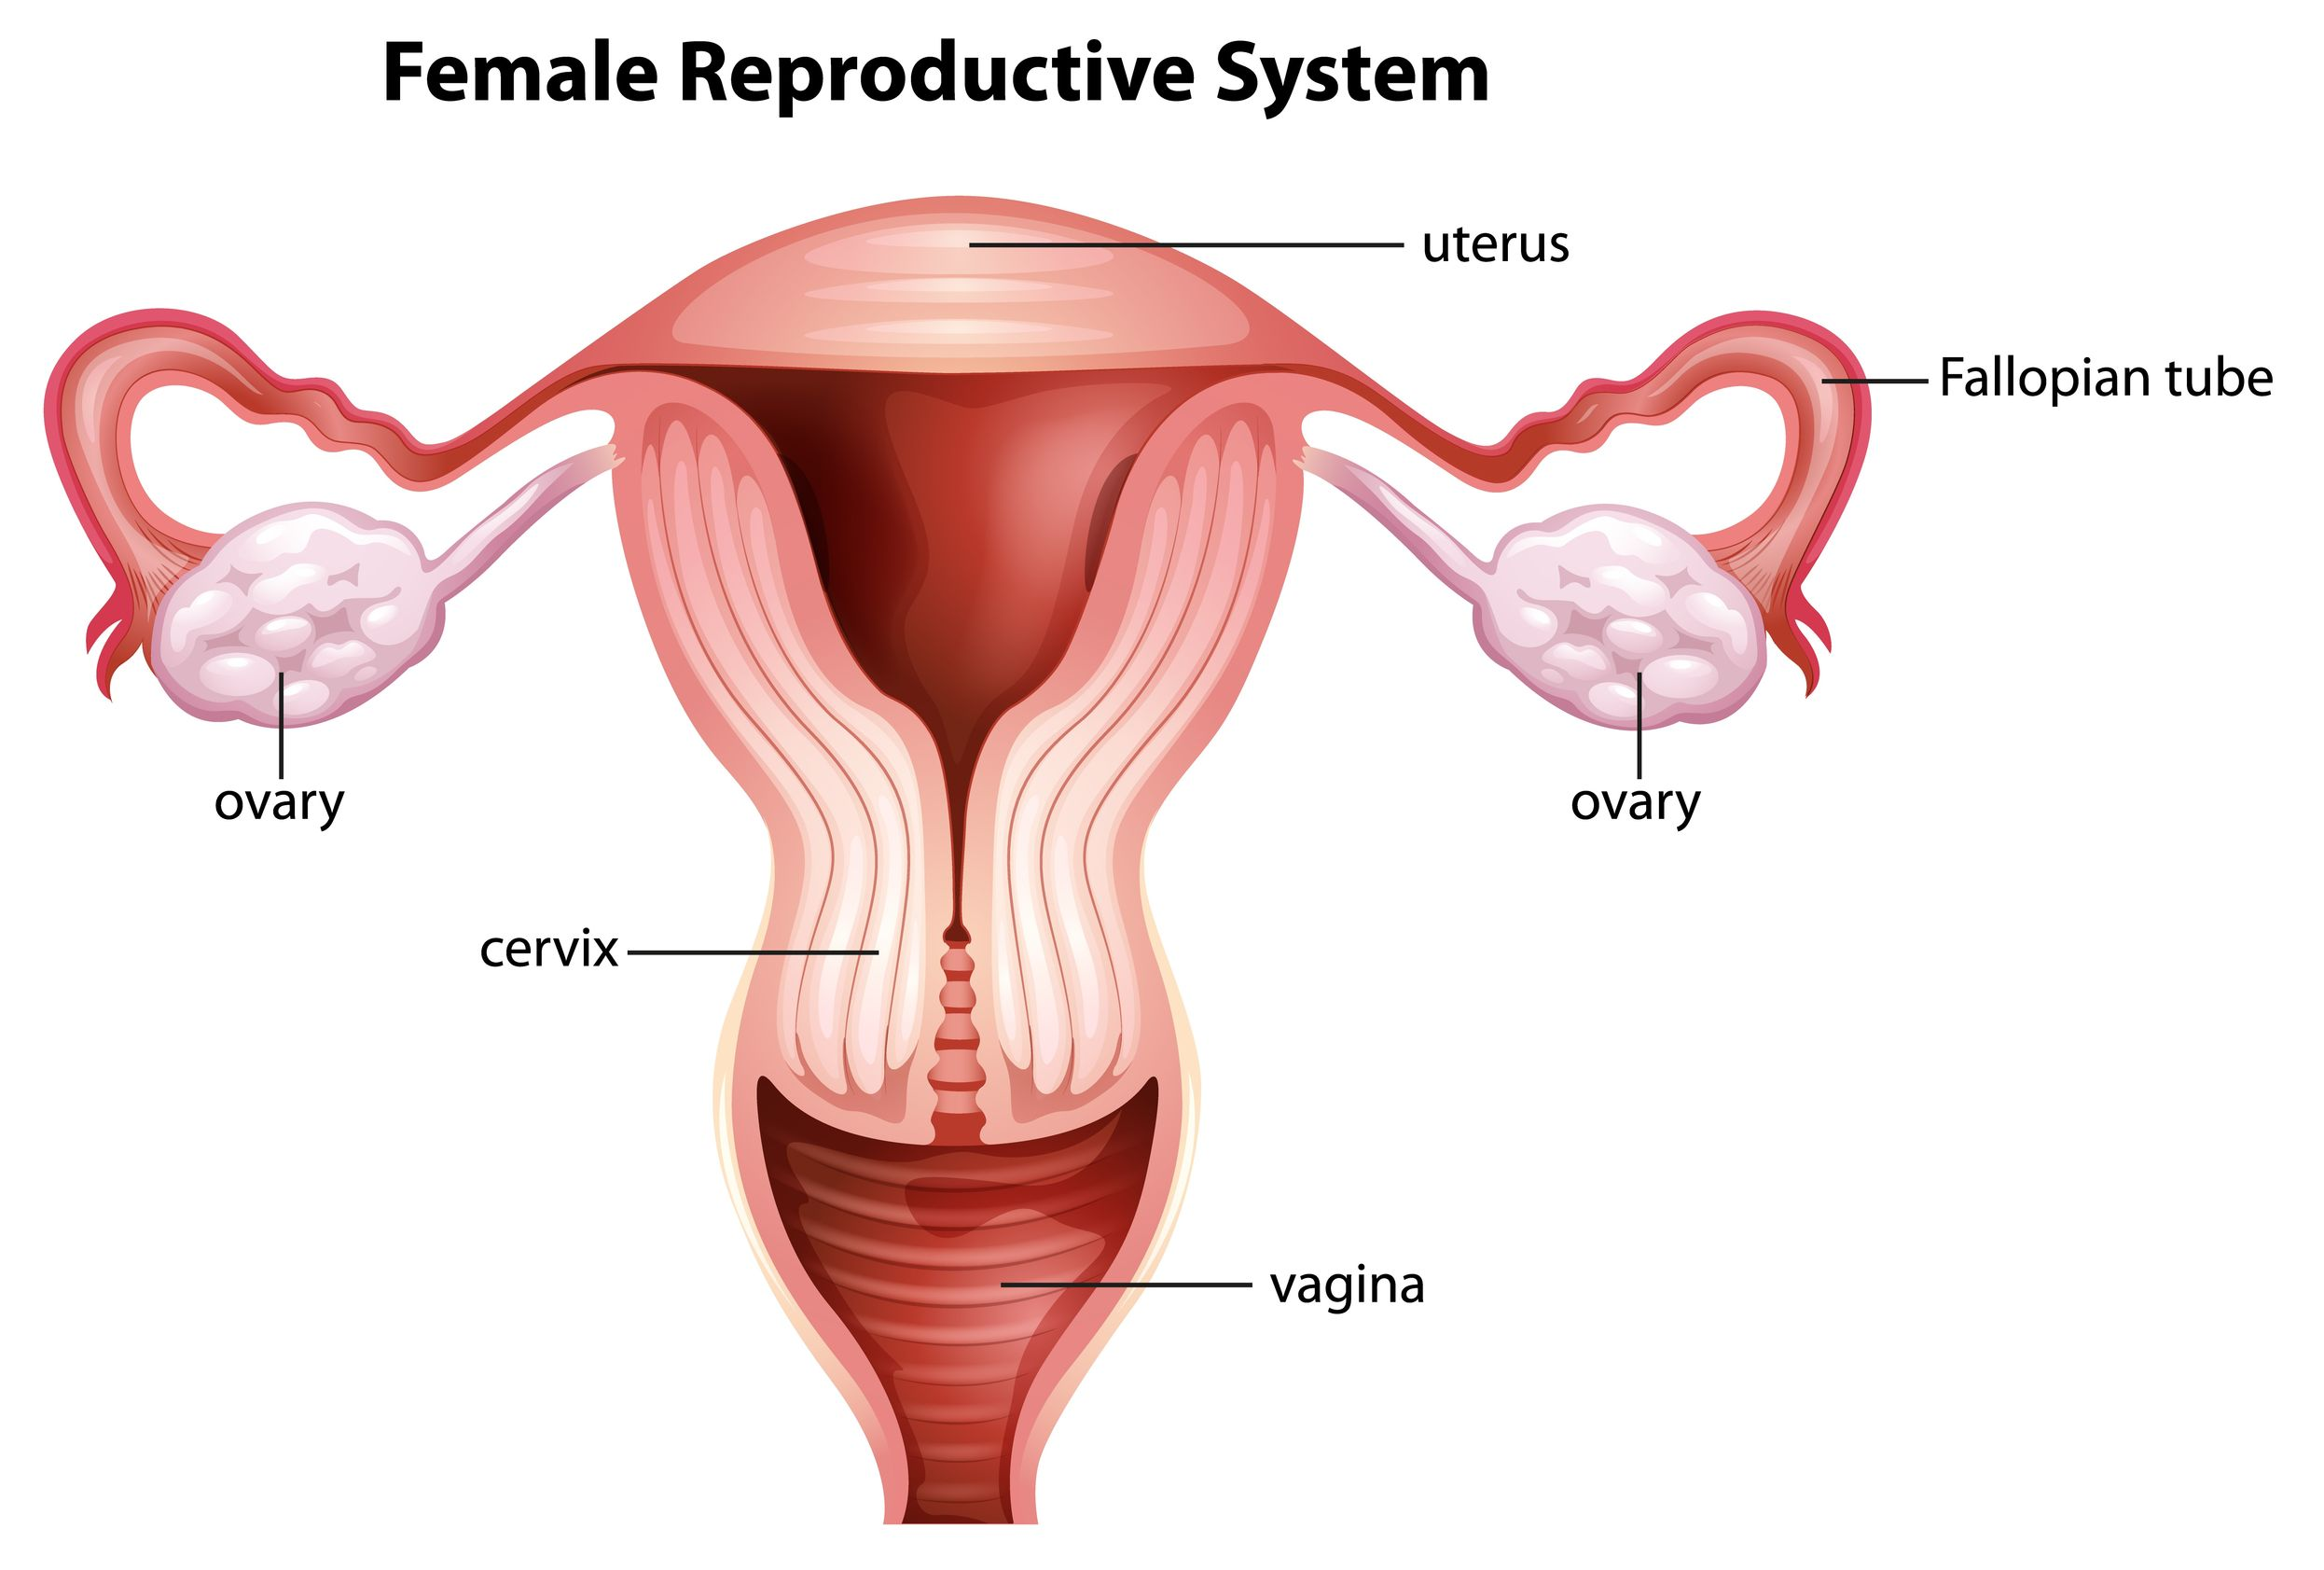 Female Reproductive System graphic